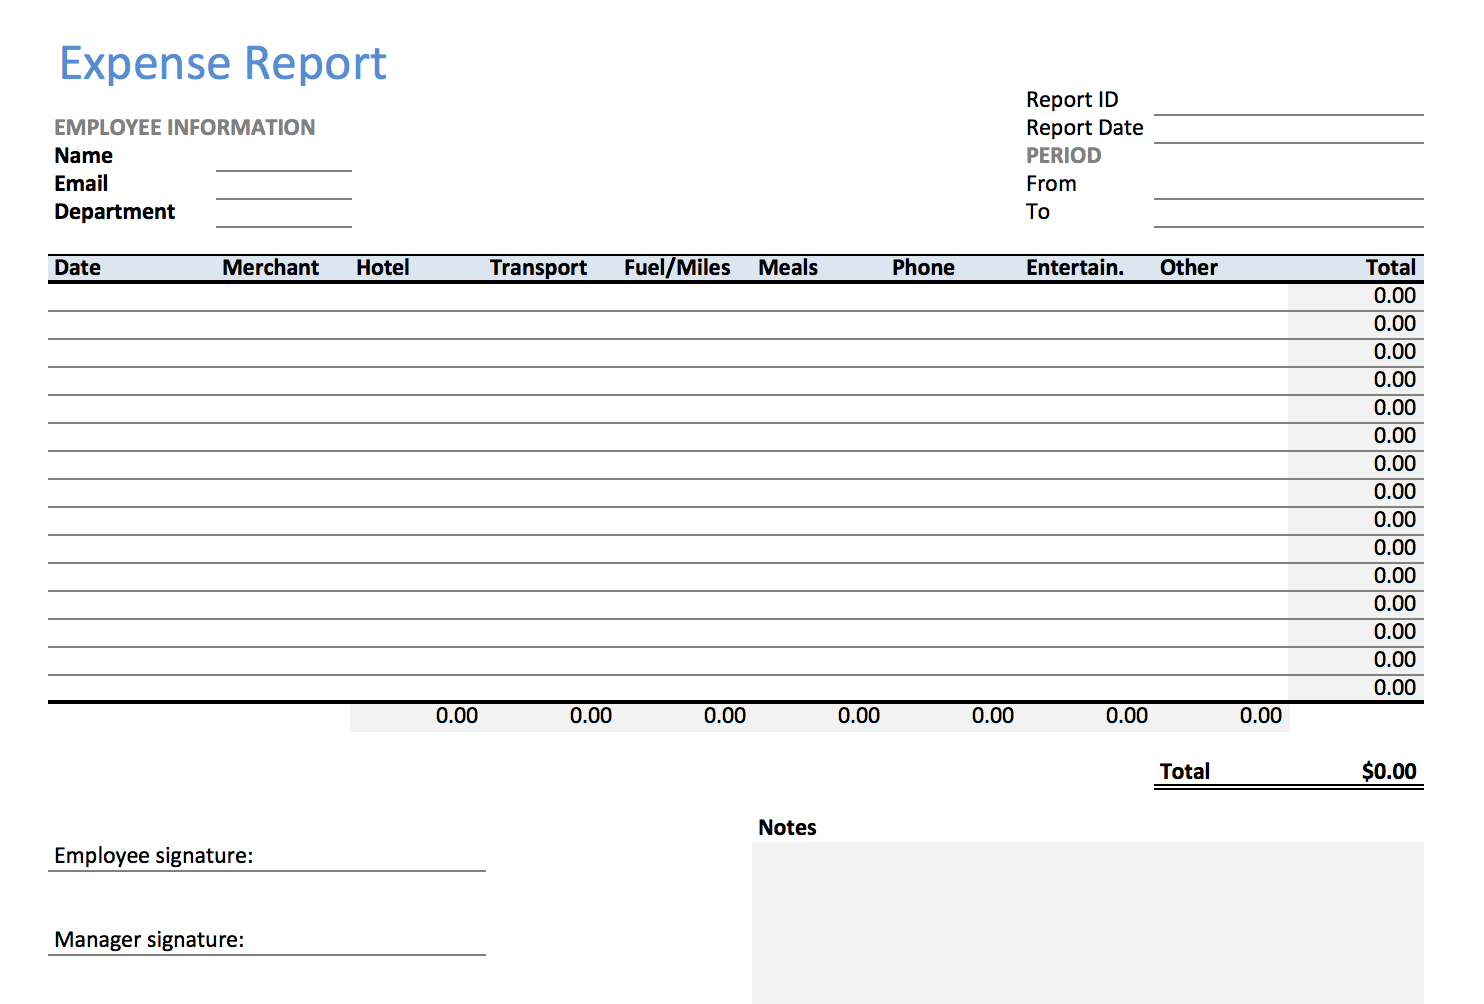 We Ve Created An Excel Expense Report Template That Can